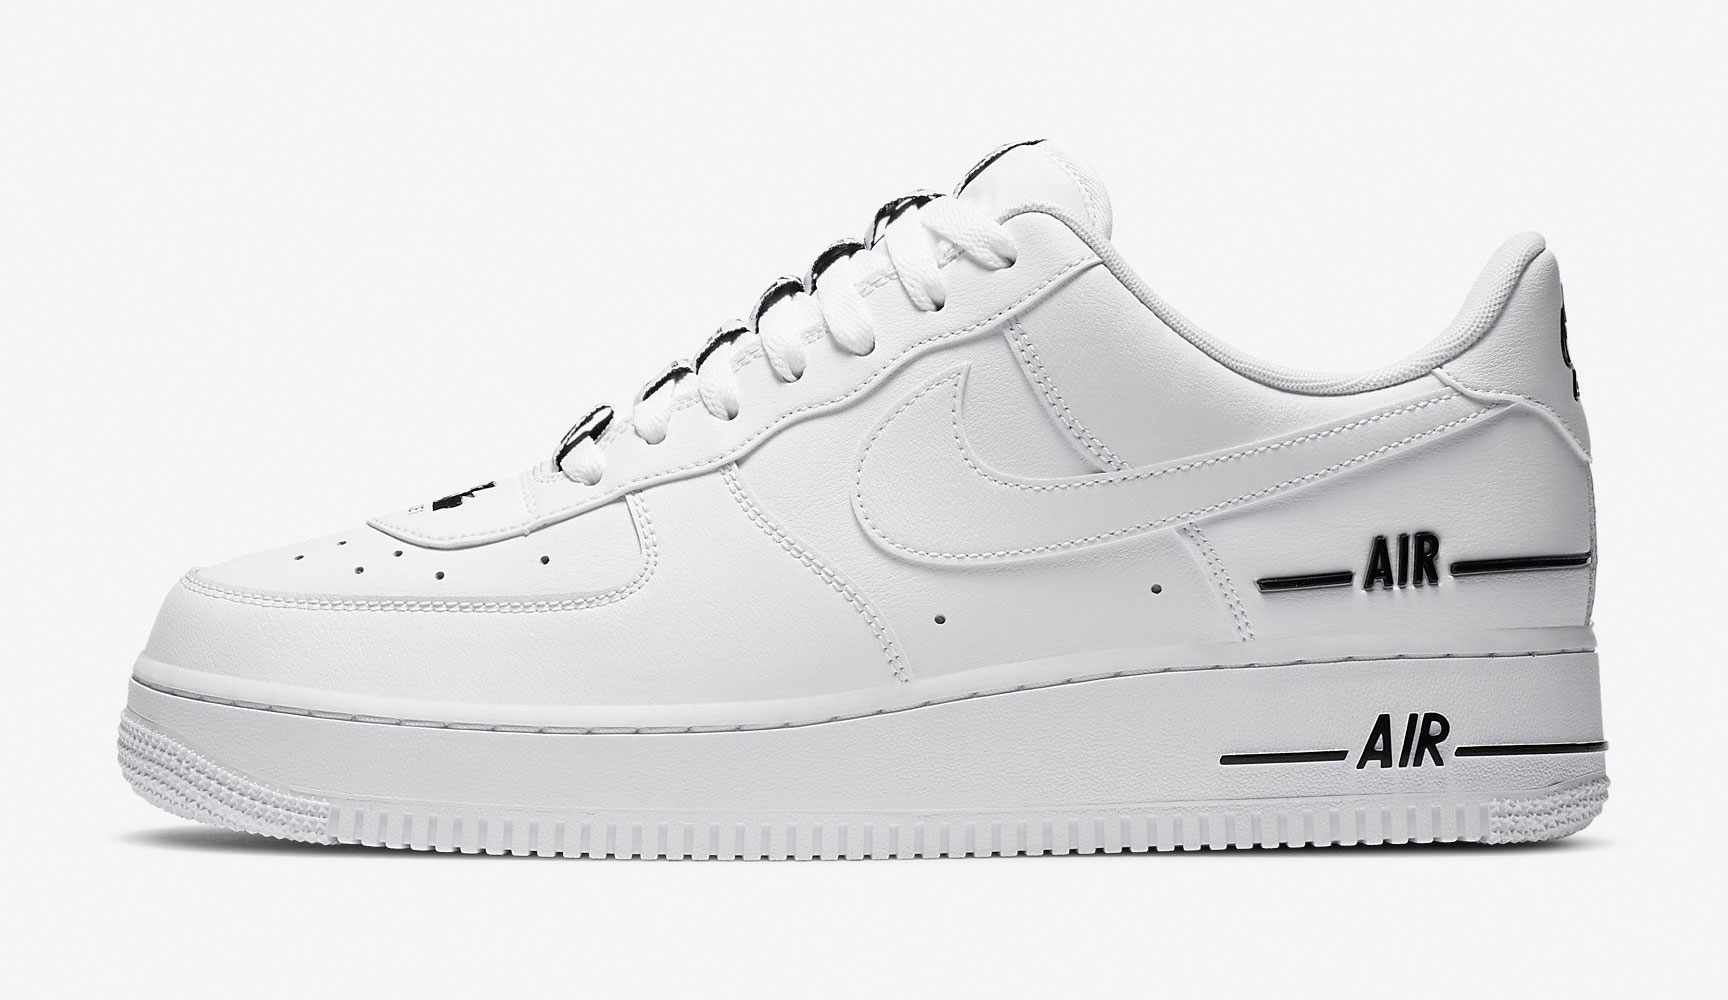 nike-air-force-1-07-low-added-air-white-black-release-date